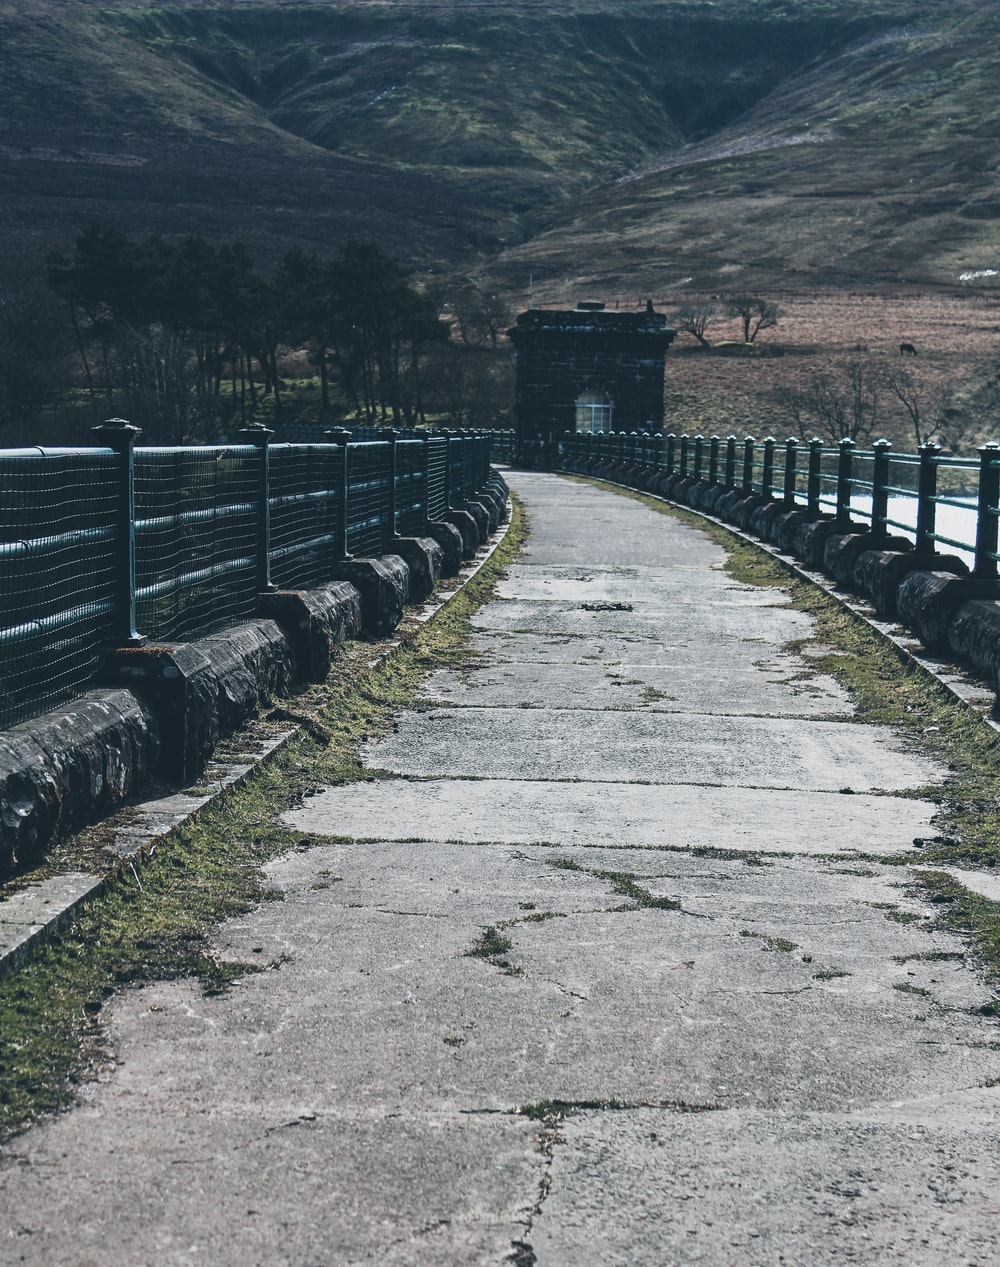 gray concrete road with gray metal fence